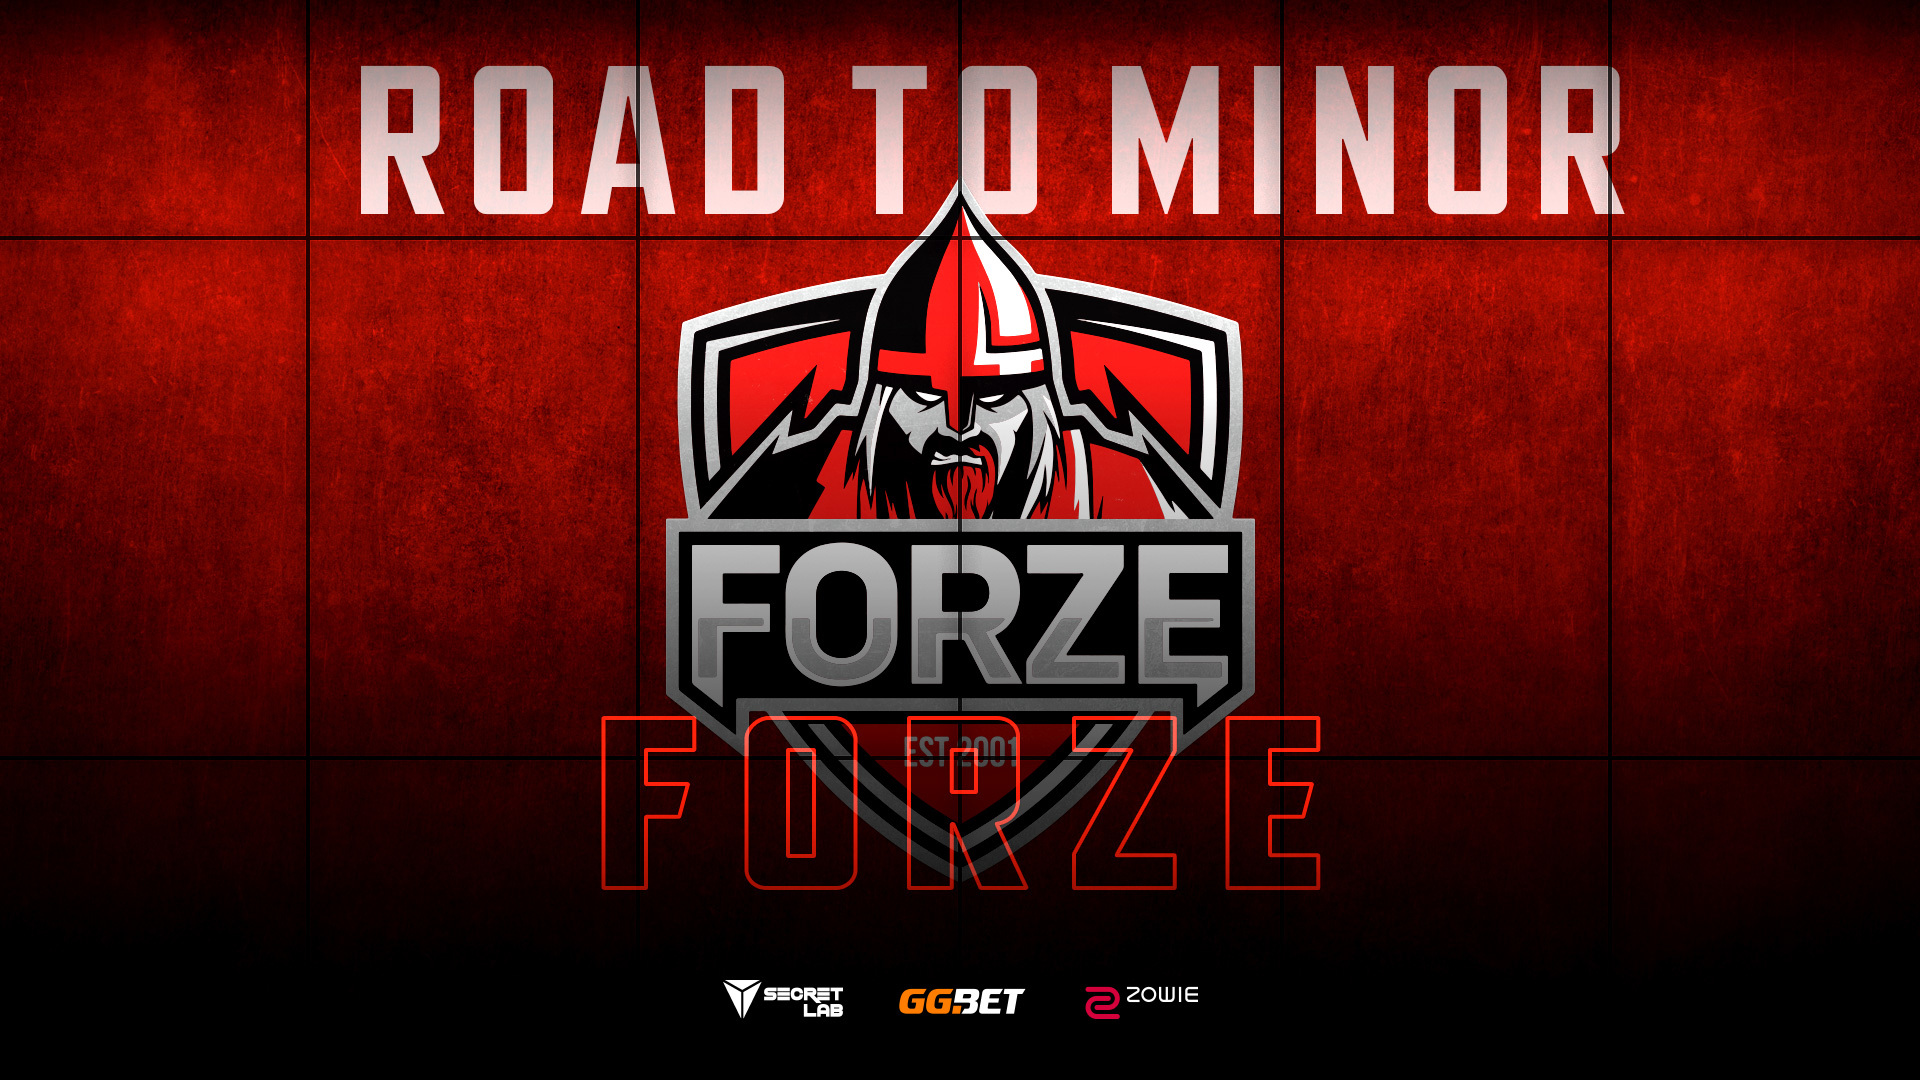 Road to #BerlinMinor2019: forZe